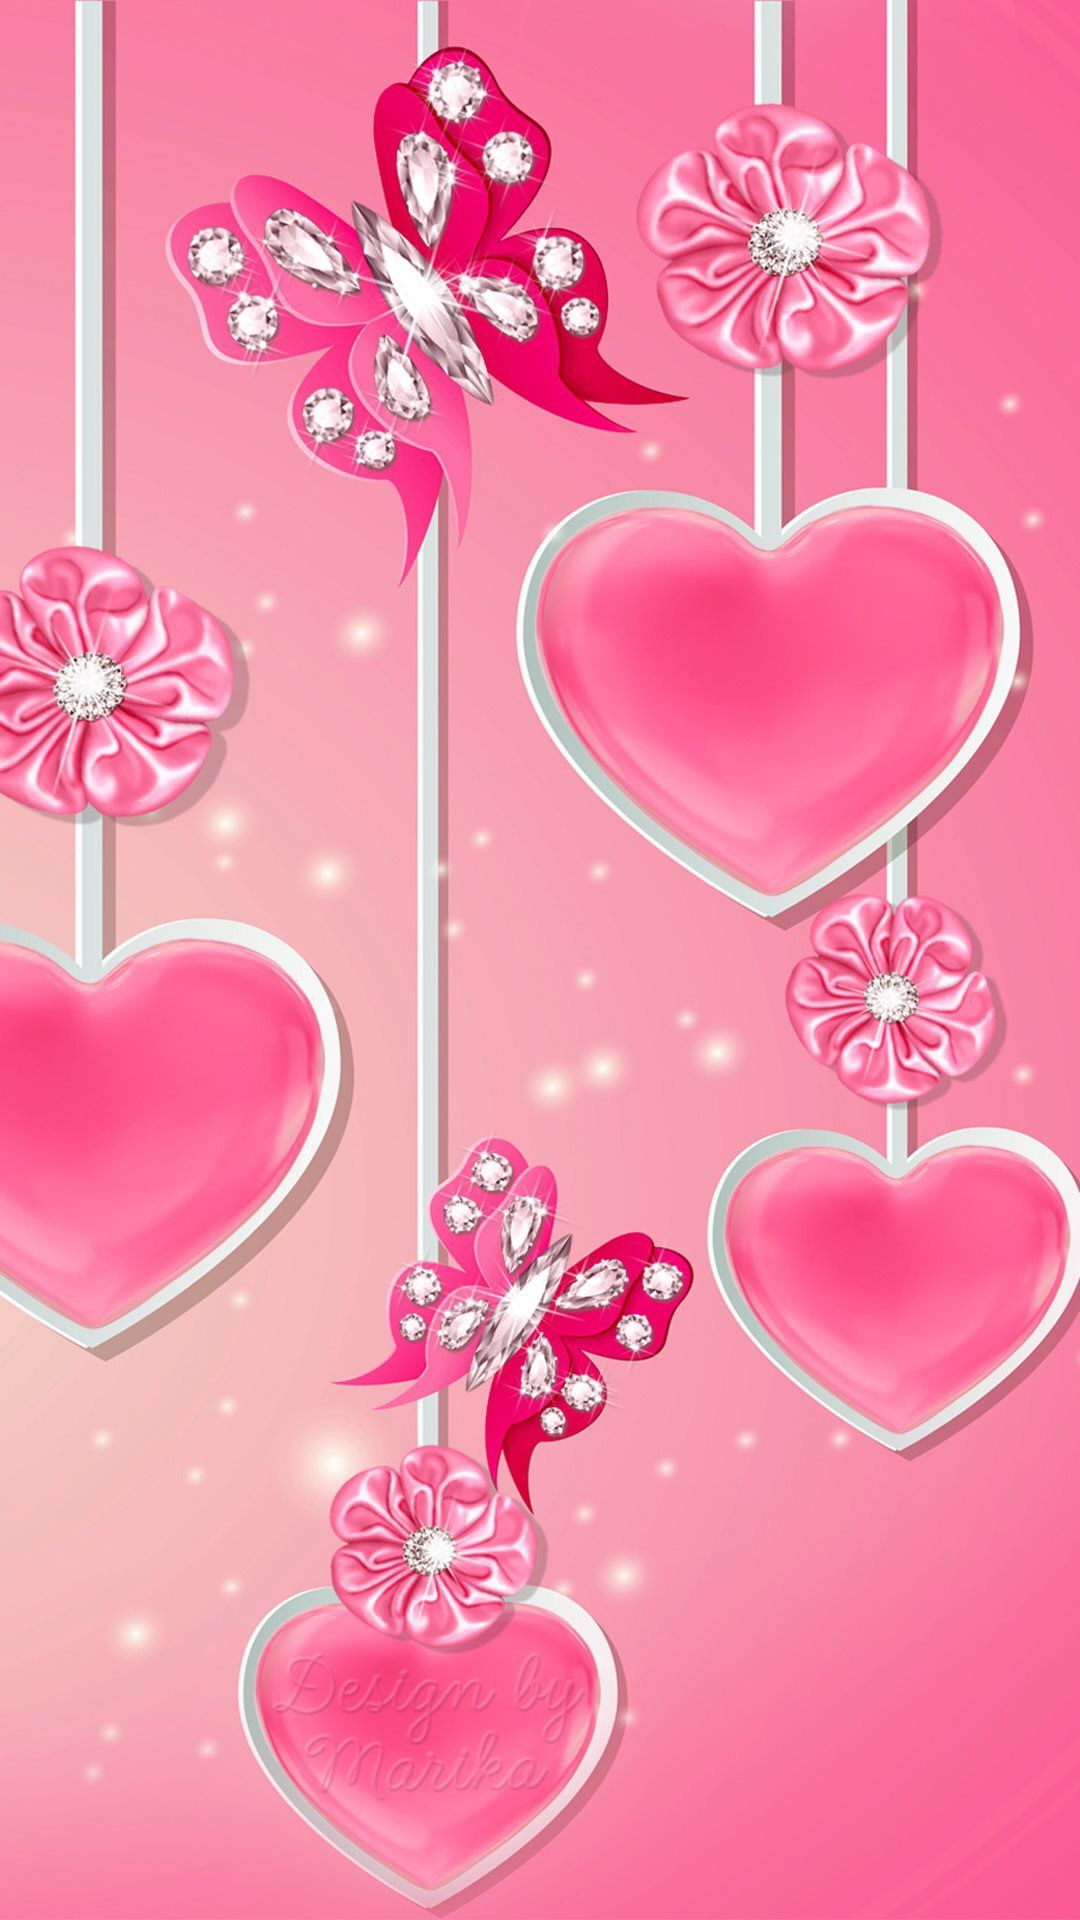 Pin by jennifer hernandez on wallpapers pink wallpaper - Pink roses and hearts wallpaper ...